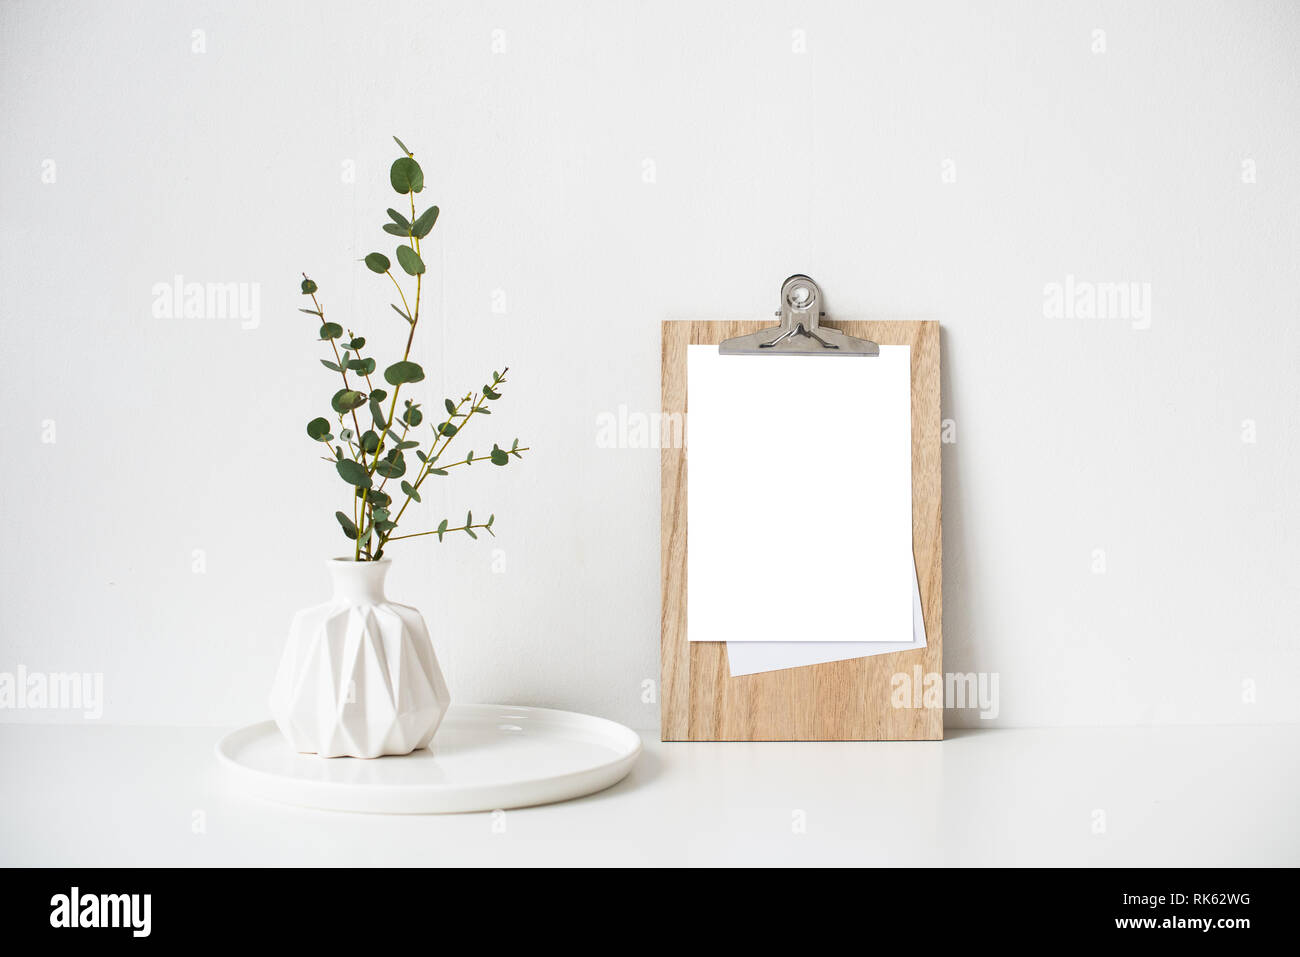 Minimalist Home Decor With Empty Frame Mock Up On White Wall